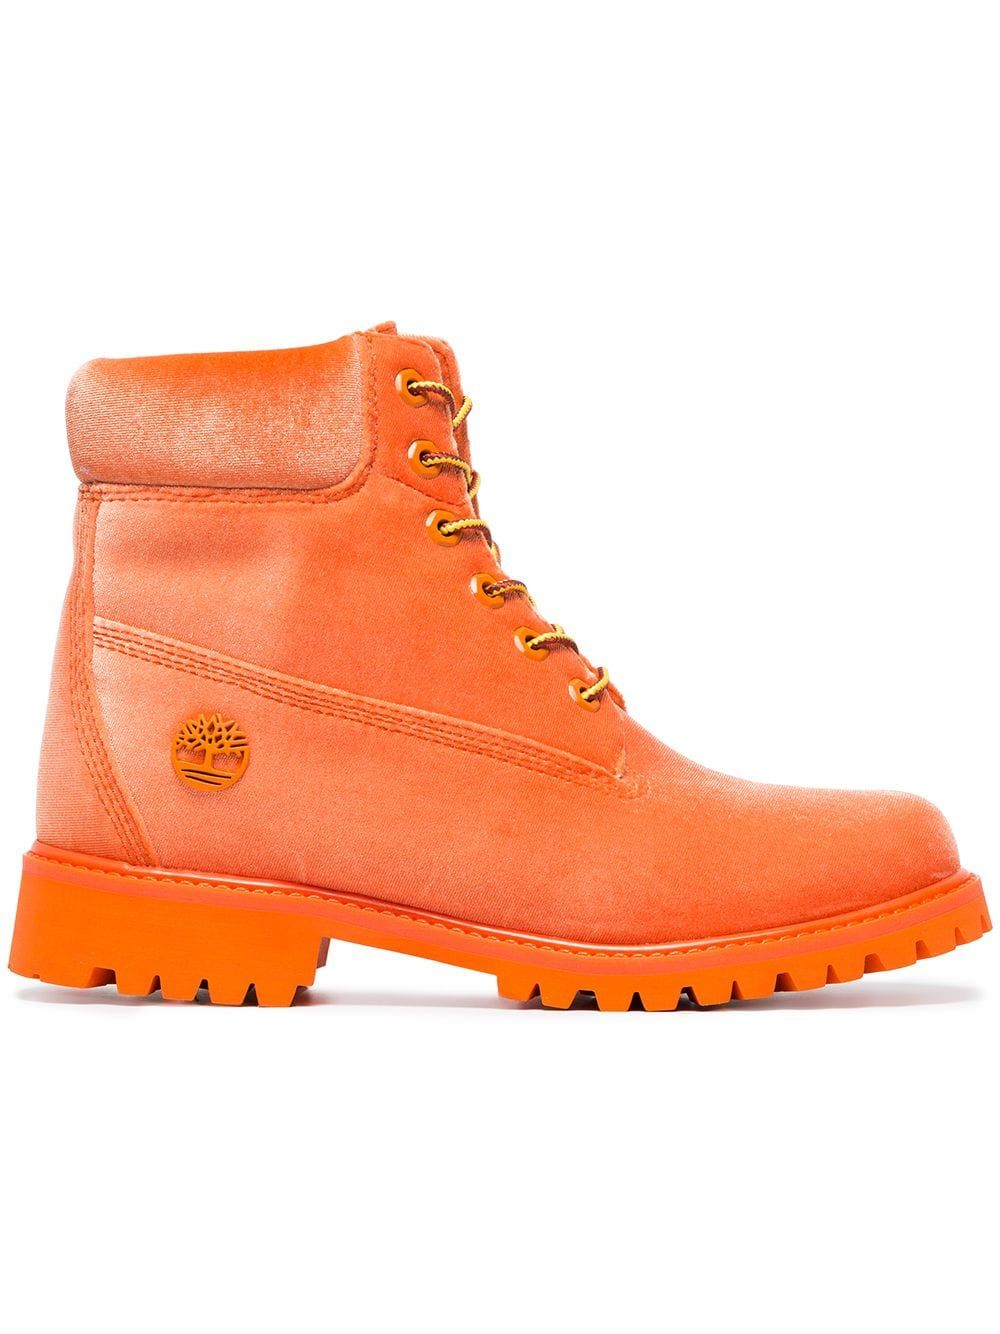 Off White x Timberland orange velvet boots Yellow